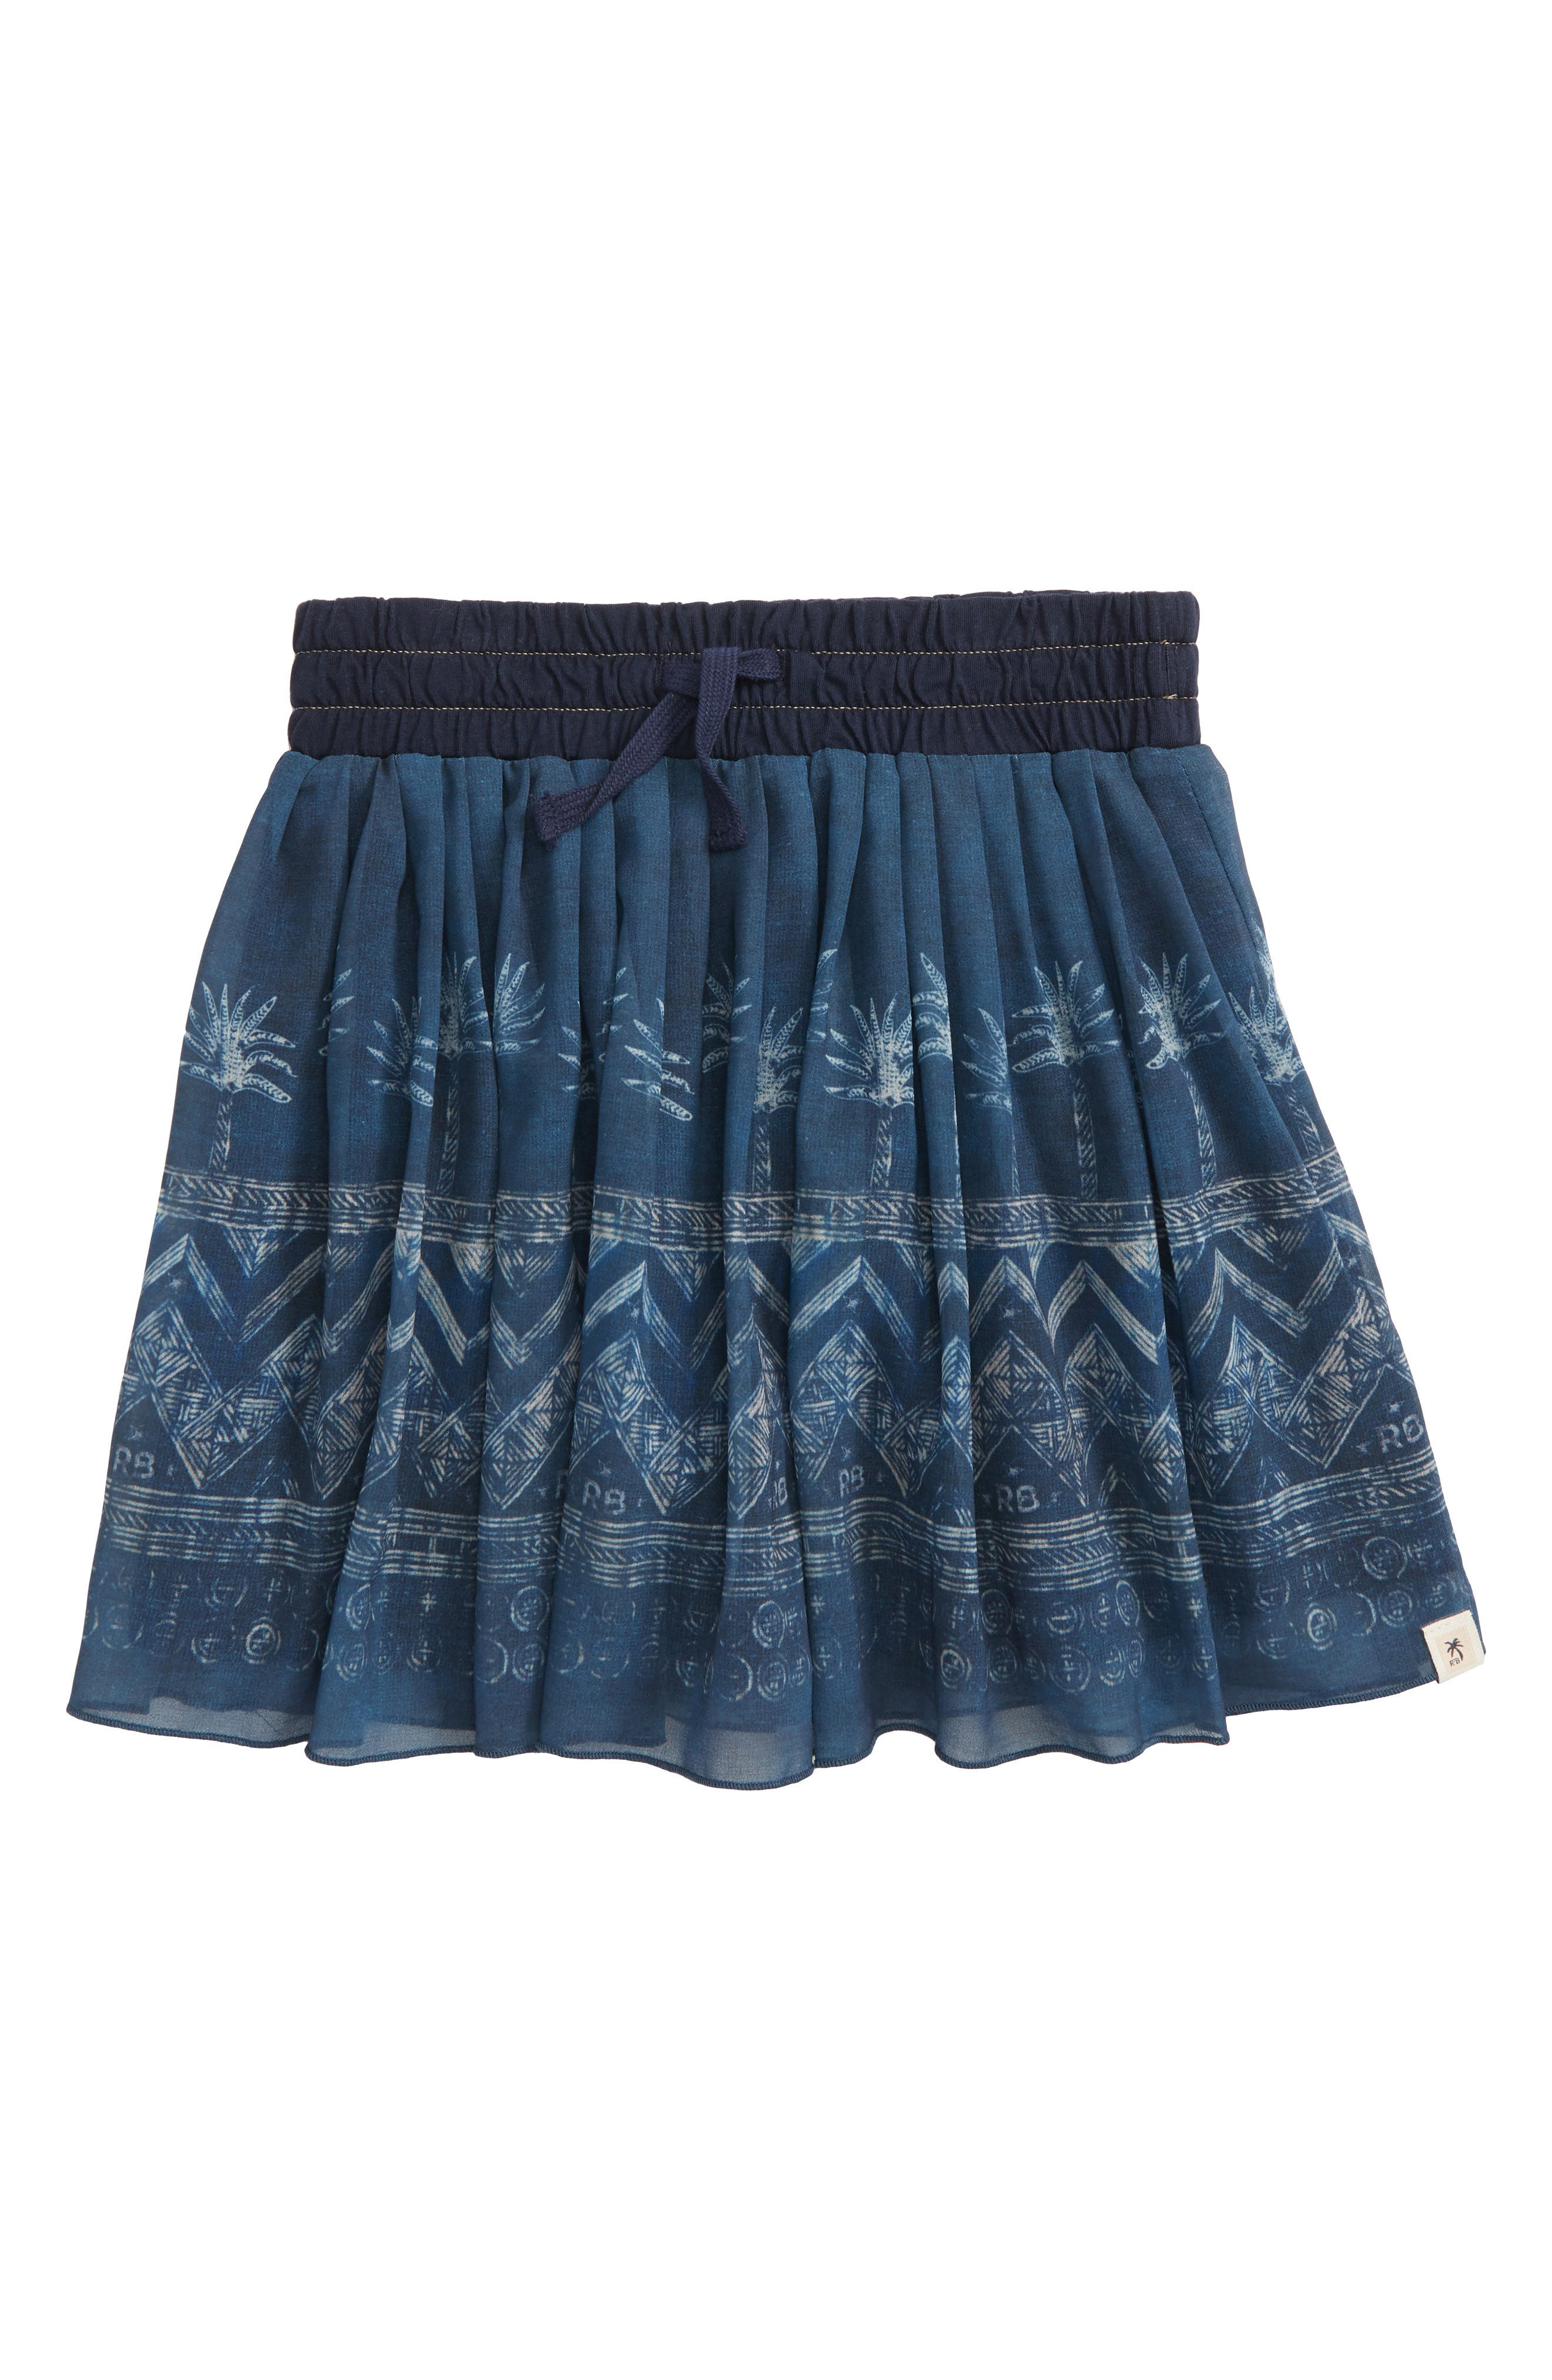 Scotch R'Belle Pleated Skirt,                         Main,                         color, Navy